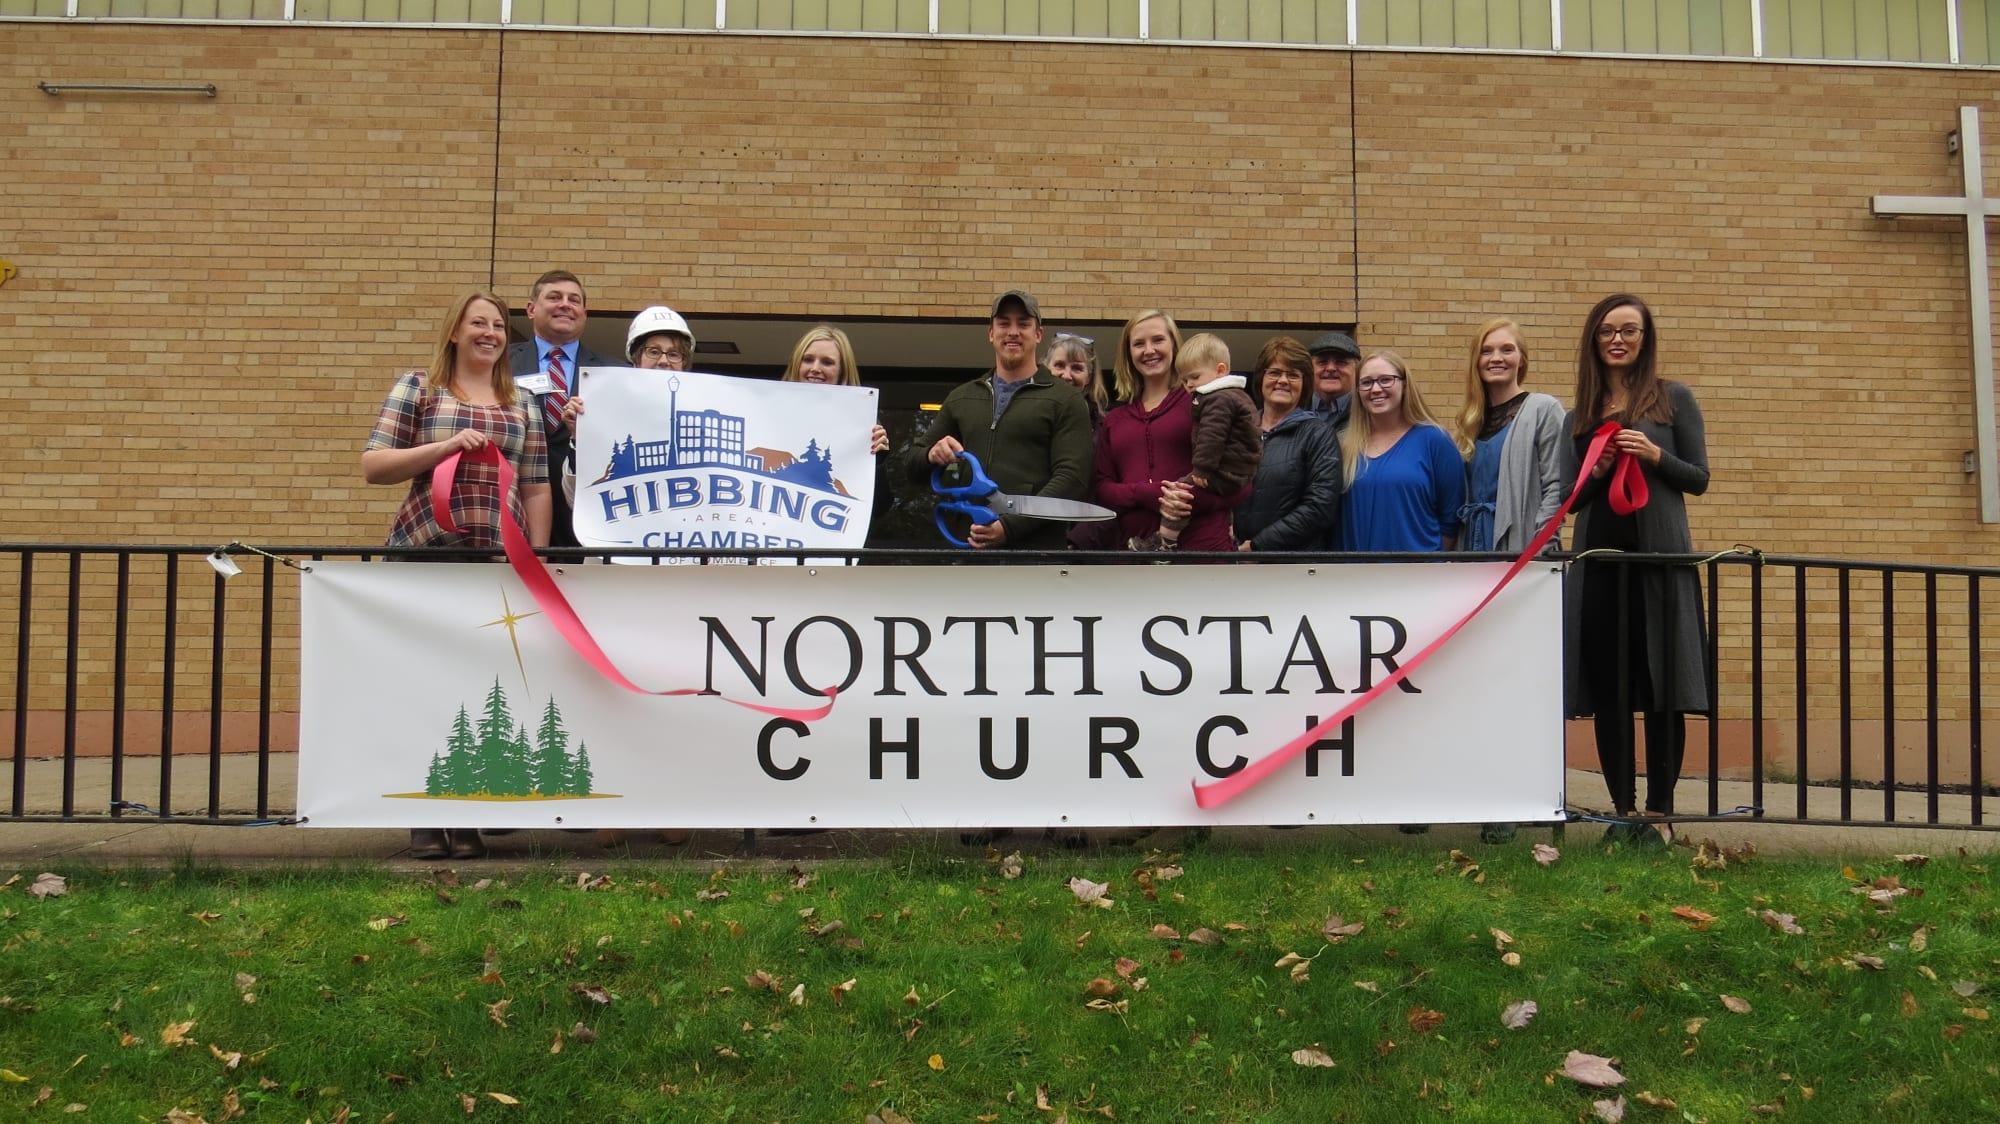 North-Star-Church.JPG-w2000.jpg